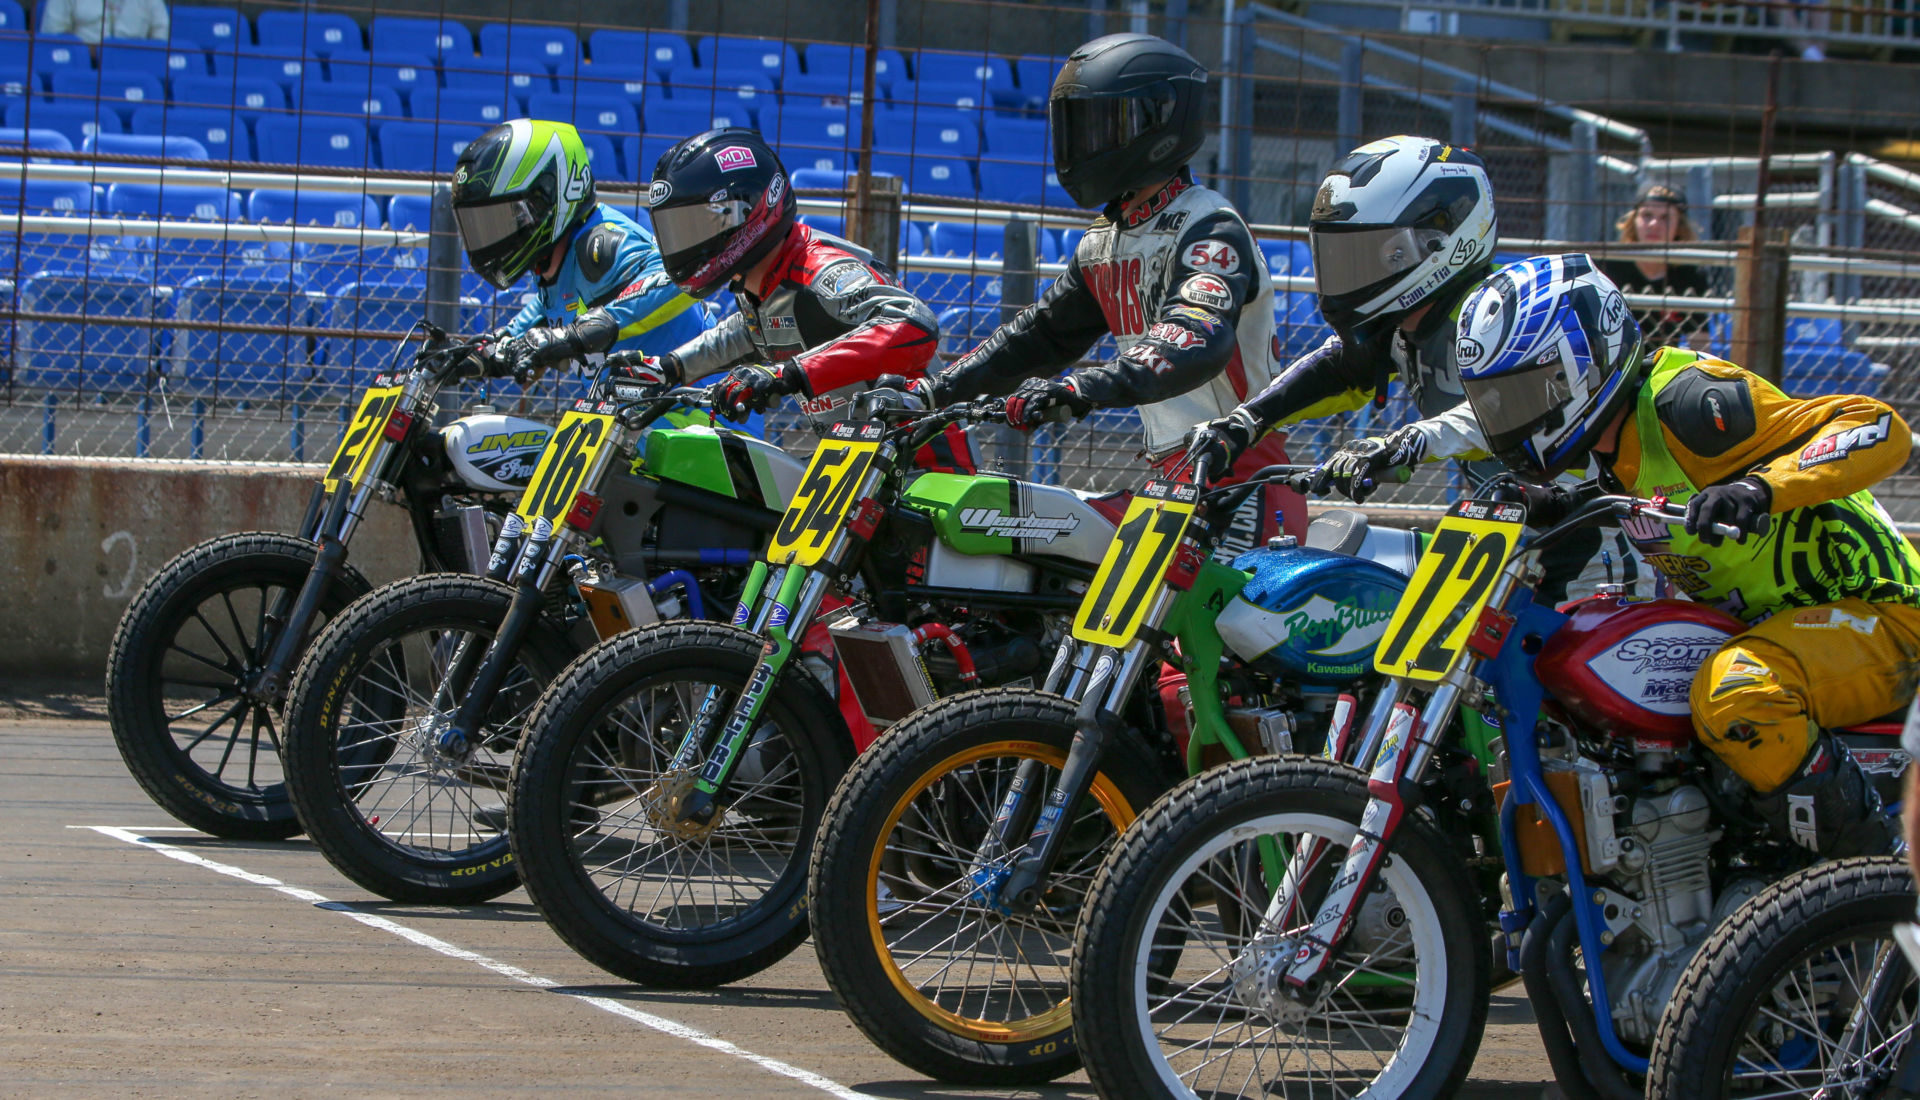 American Flat Track racers. Photo by Scott Hunter, courtesy of AFT.